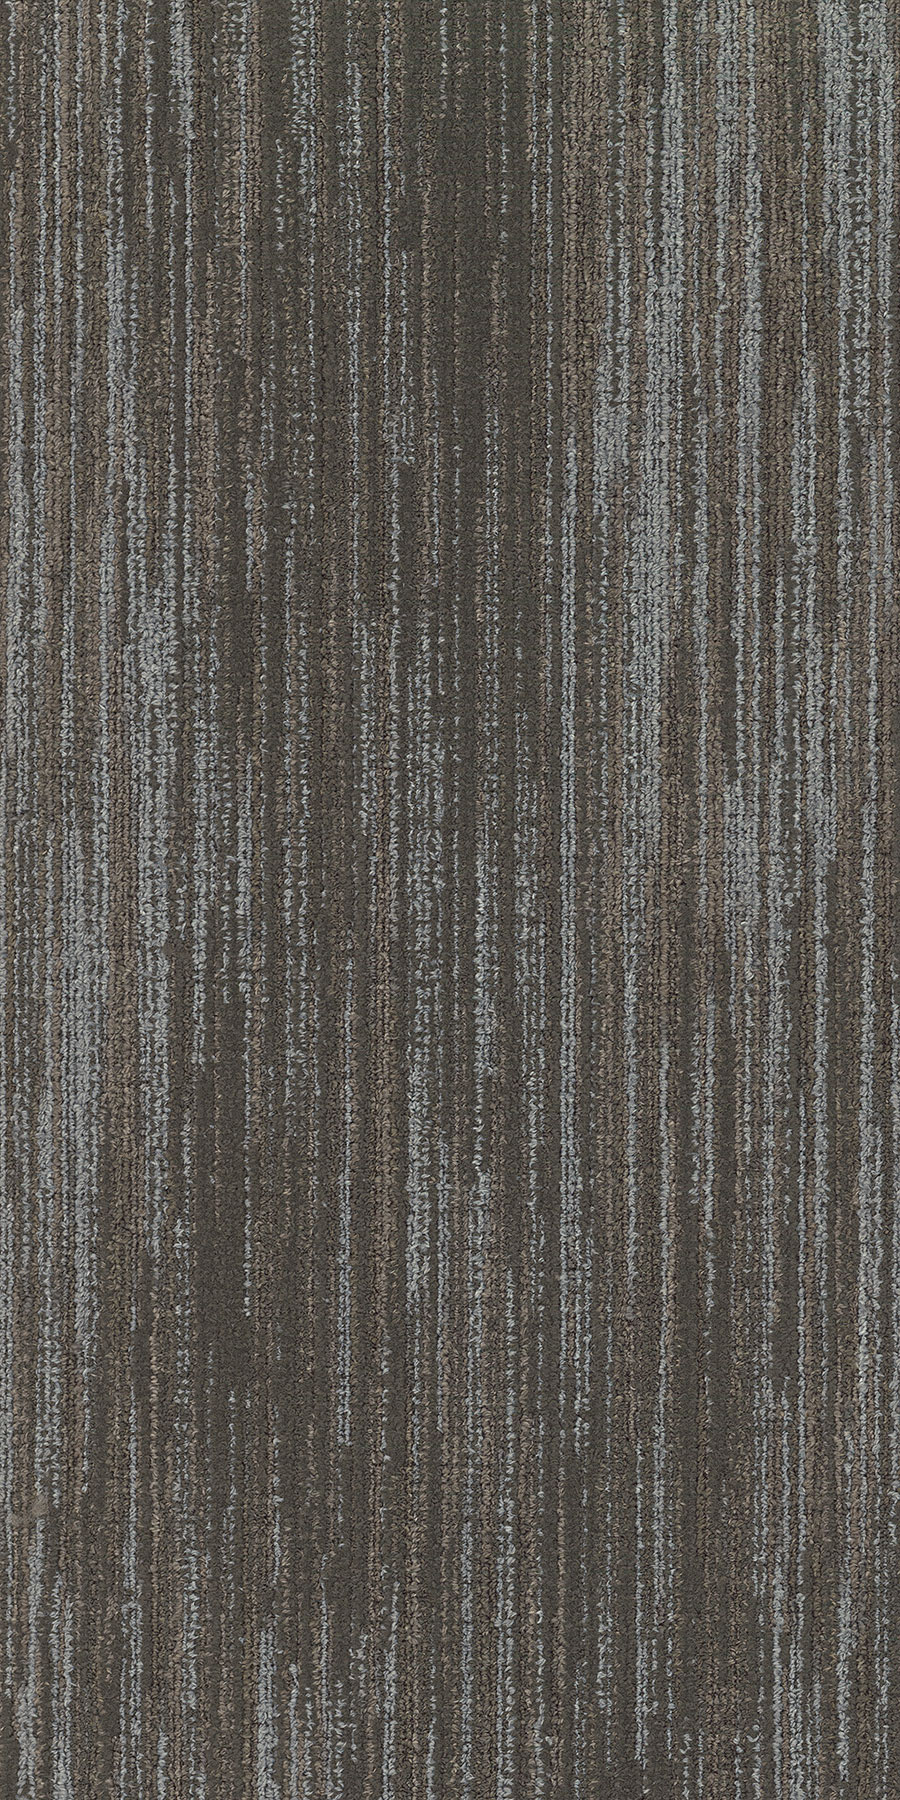 Amtico International: With The Grain Groove